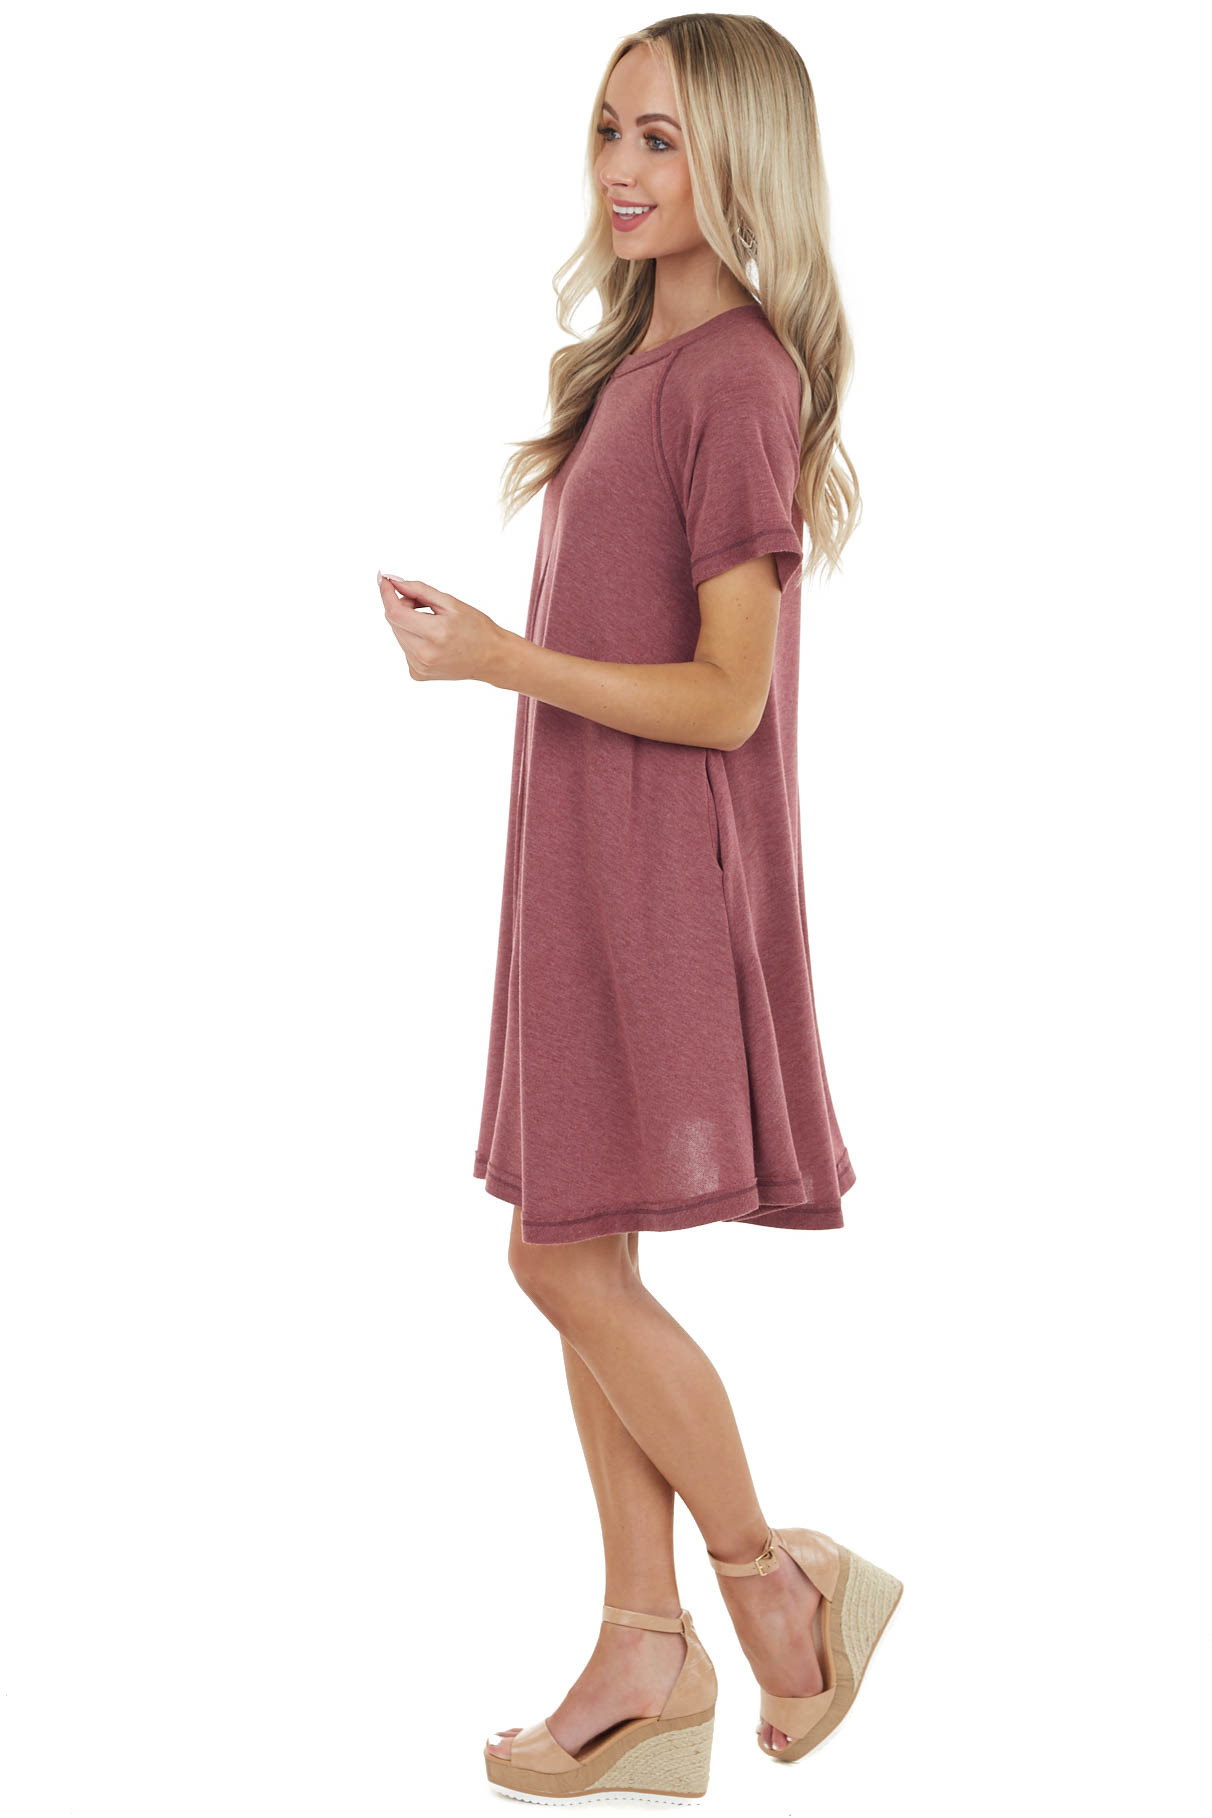 Heathered Berry Short Swing Dress with Raw Edge Details